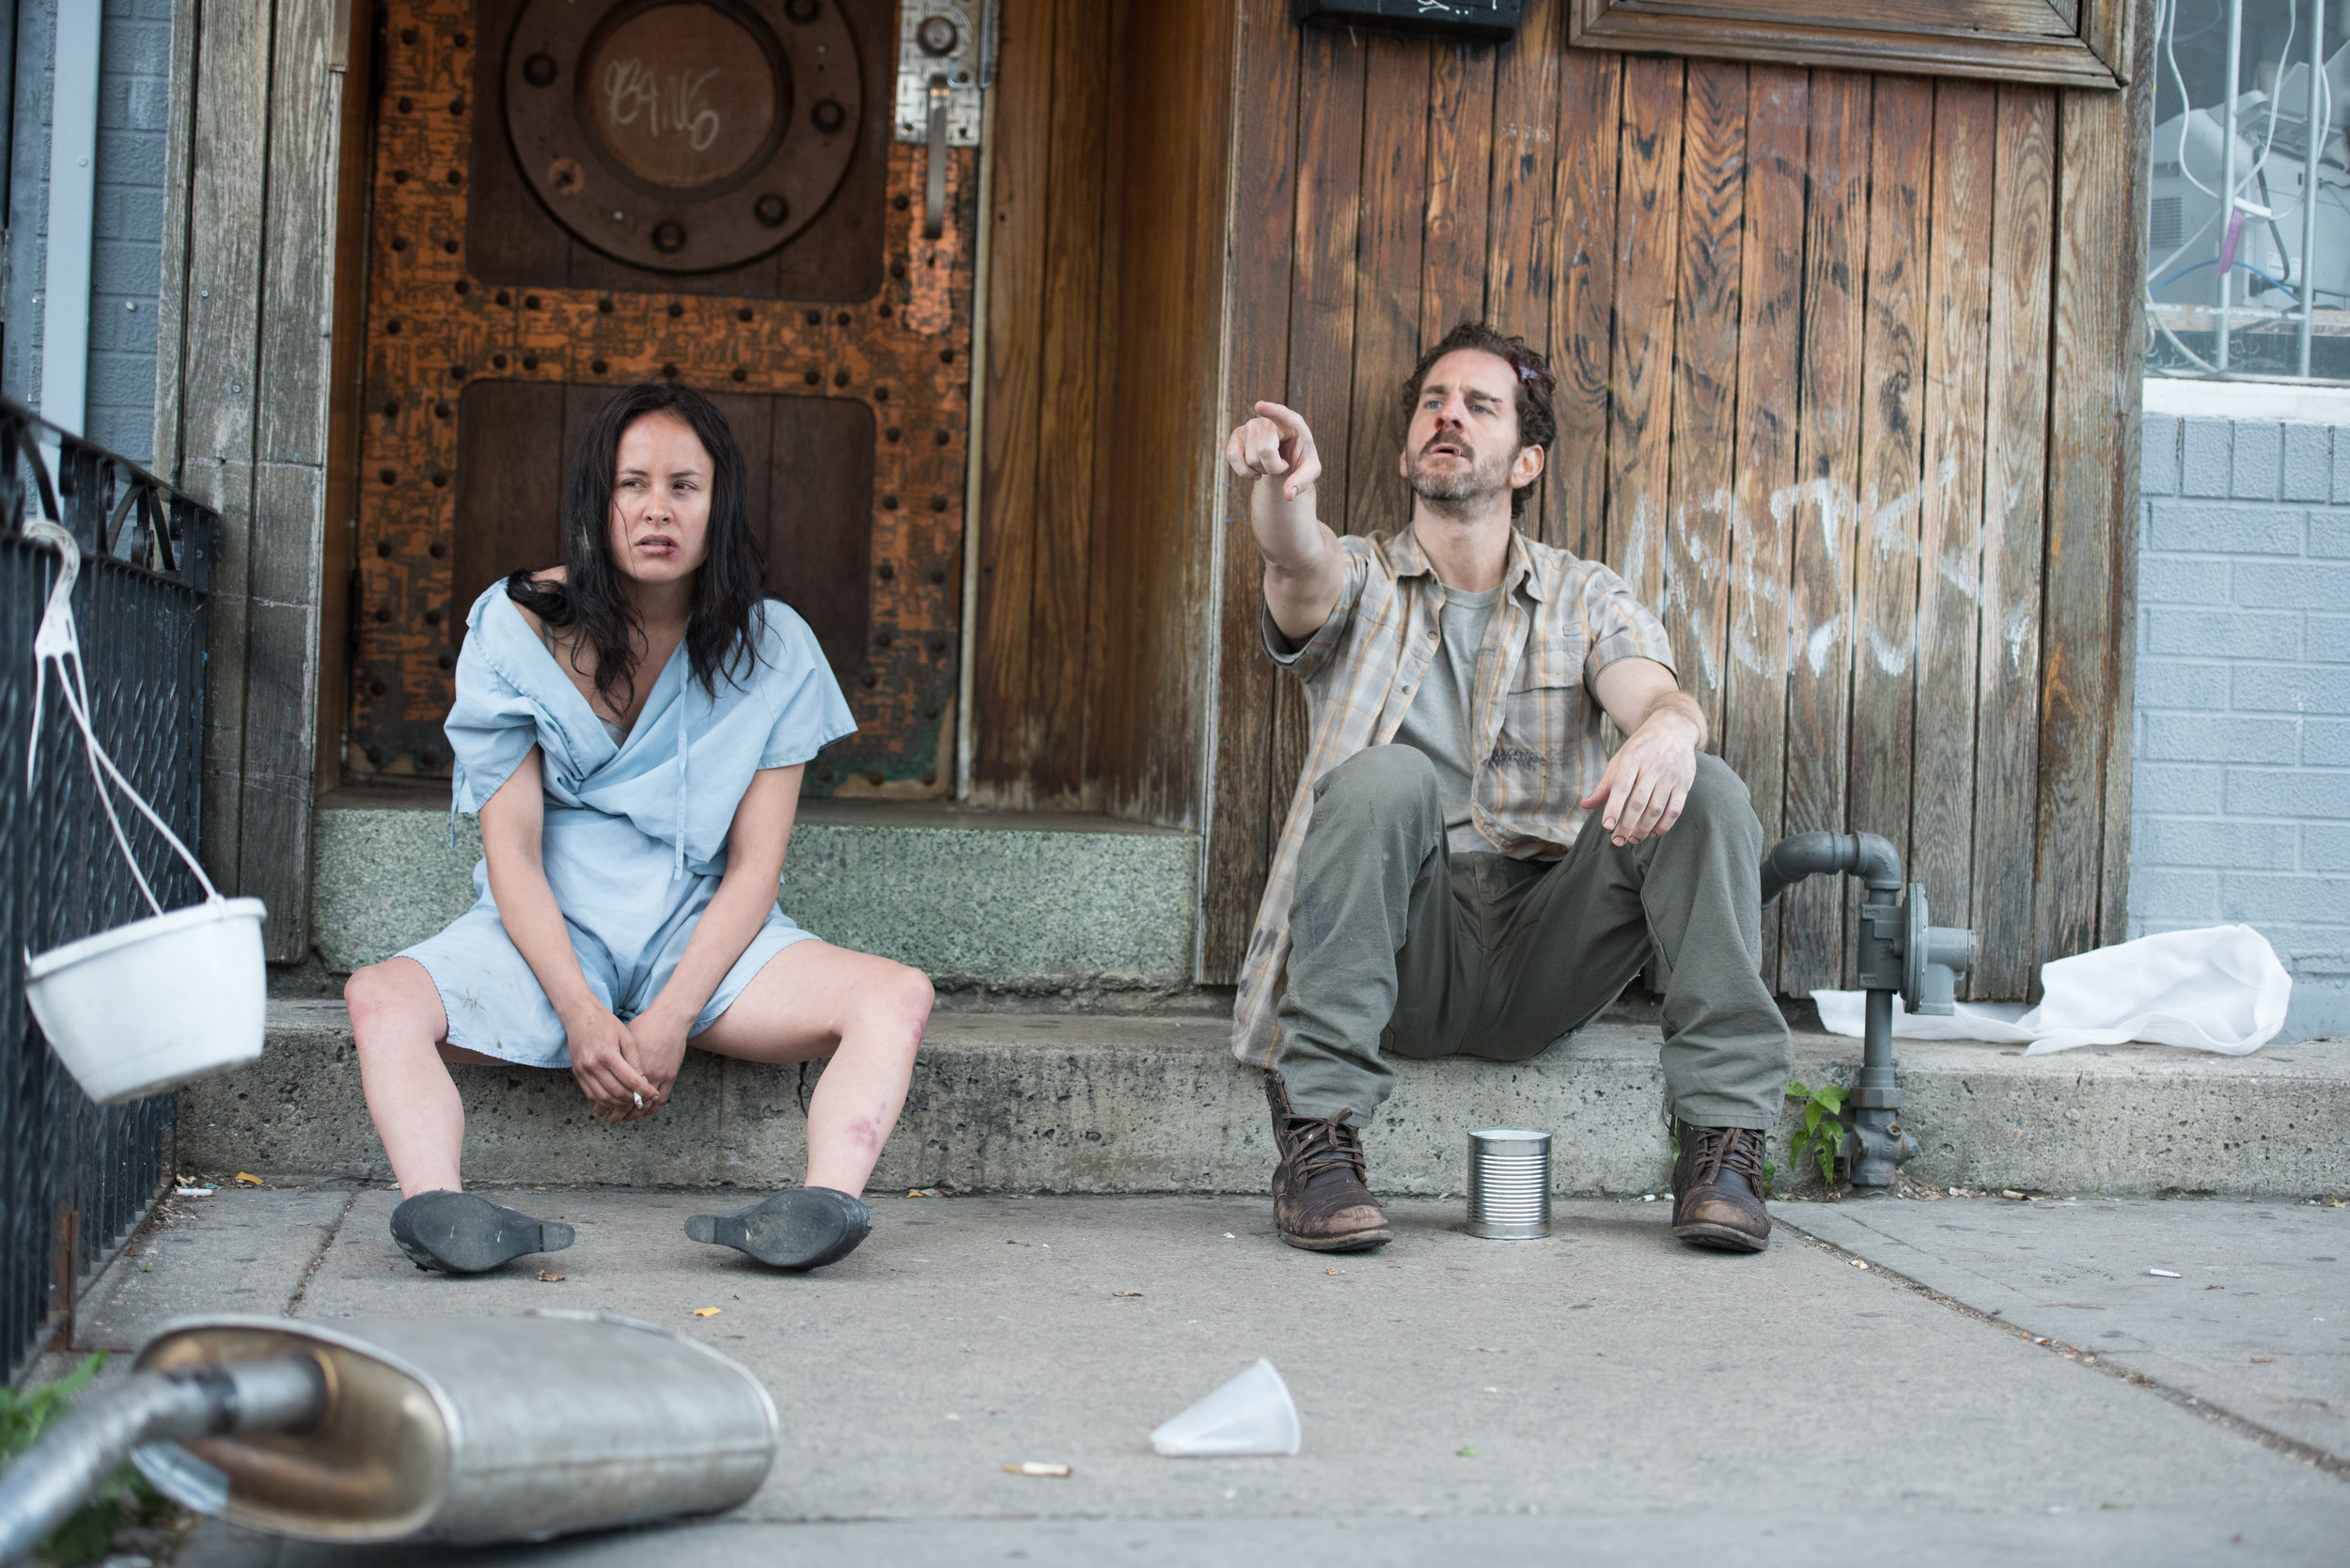 Pirie and Abrams as Lacie and Owen, two people who hit rock bottom together, played for laughs